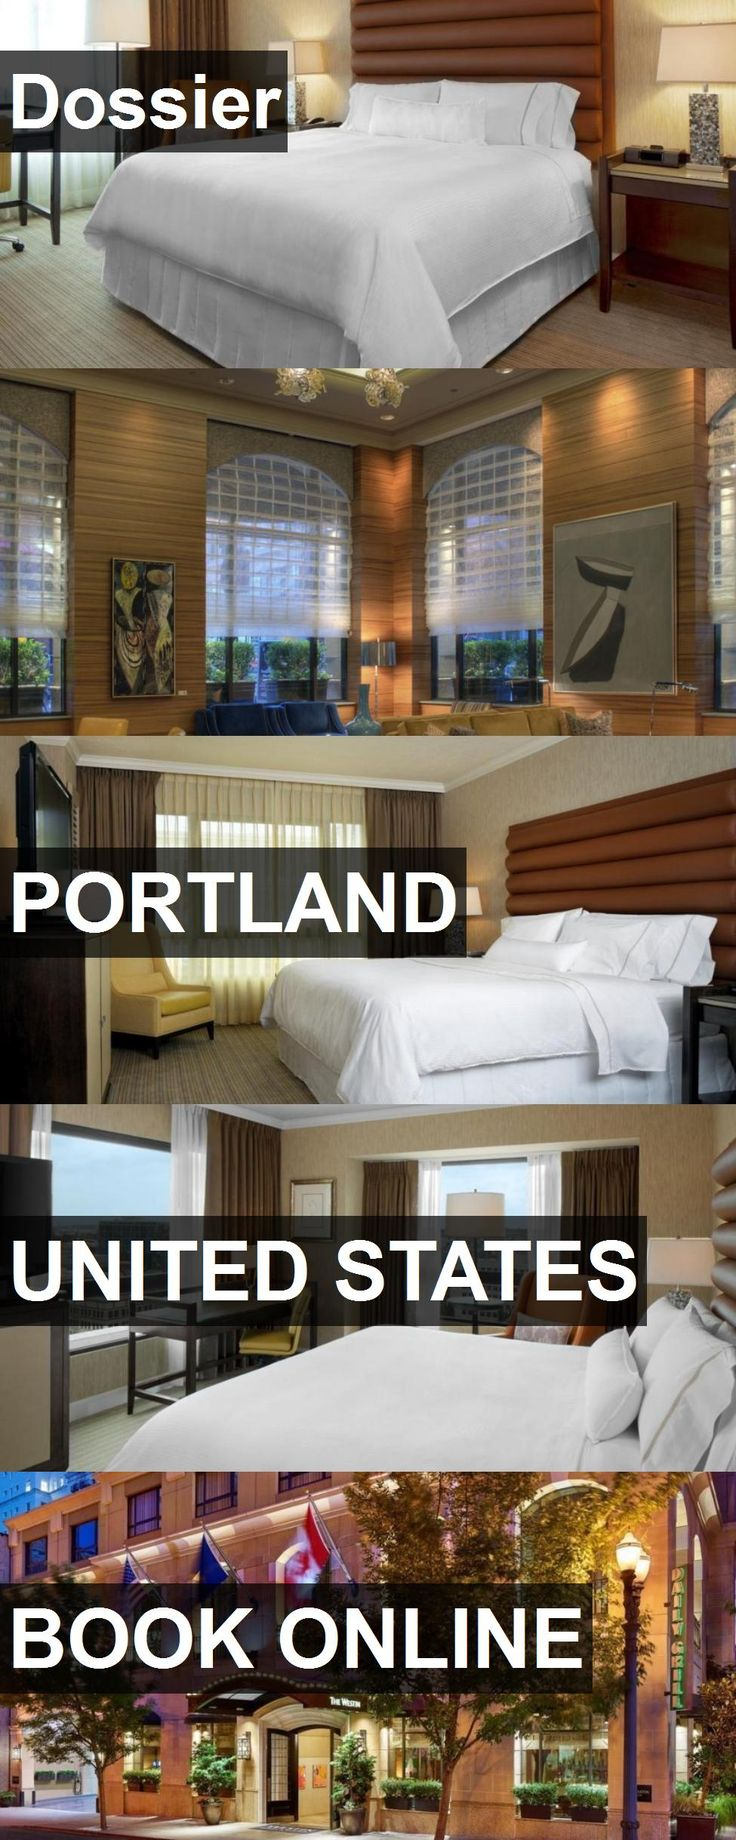 Hotel Dossier in Portland, United States. For more information, photos, reviews and best prices please follow the link. #UnitedStates #Portland #travel #vacation #hotel